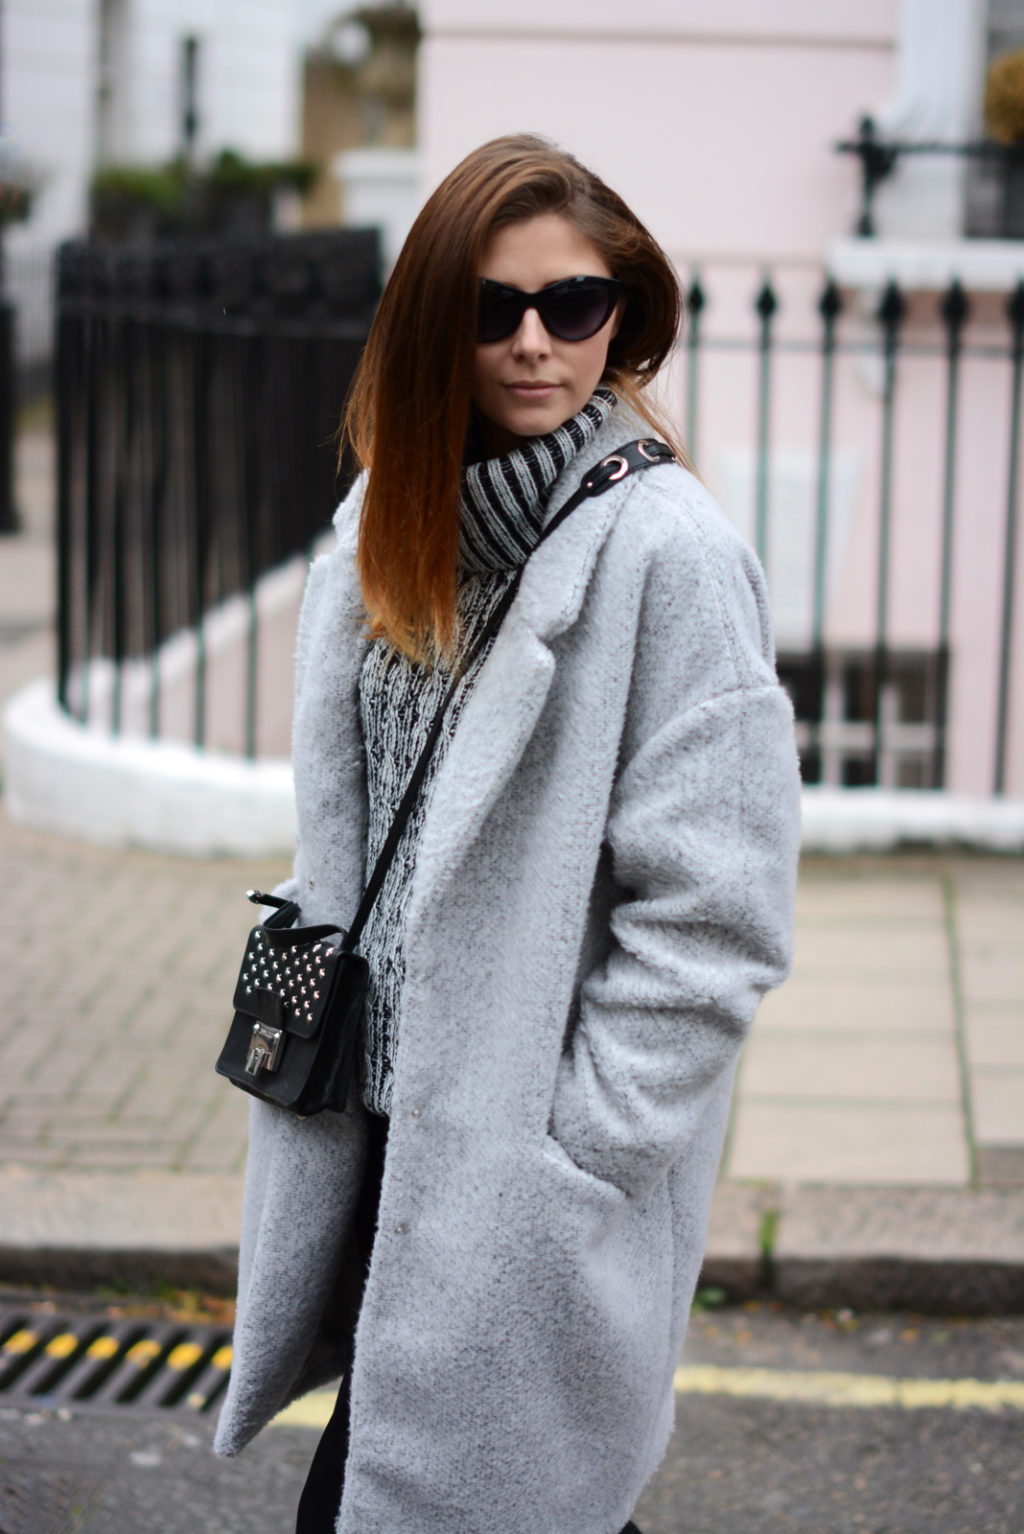 EJSTYLE-Grey-primark-cocoon-coat-black-trousers-Chunky-knit-Autumn-Winter-Outfit-OOTD